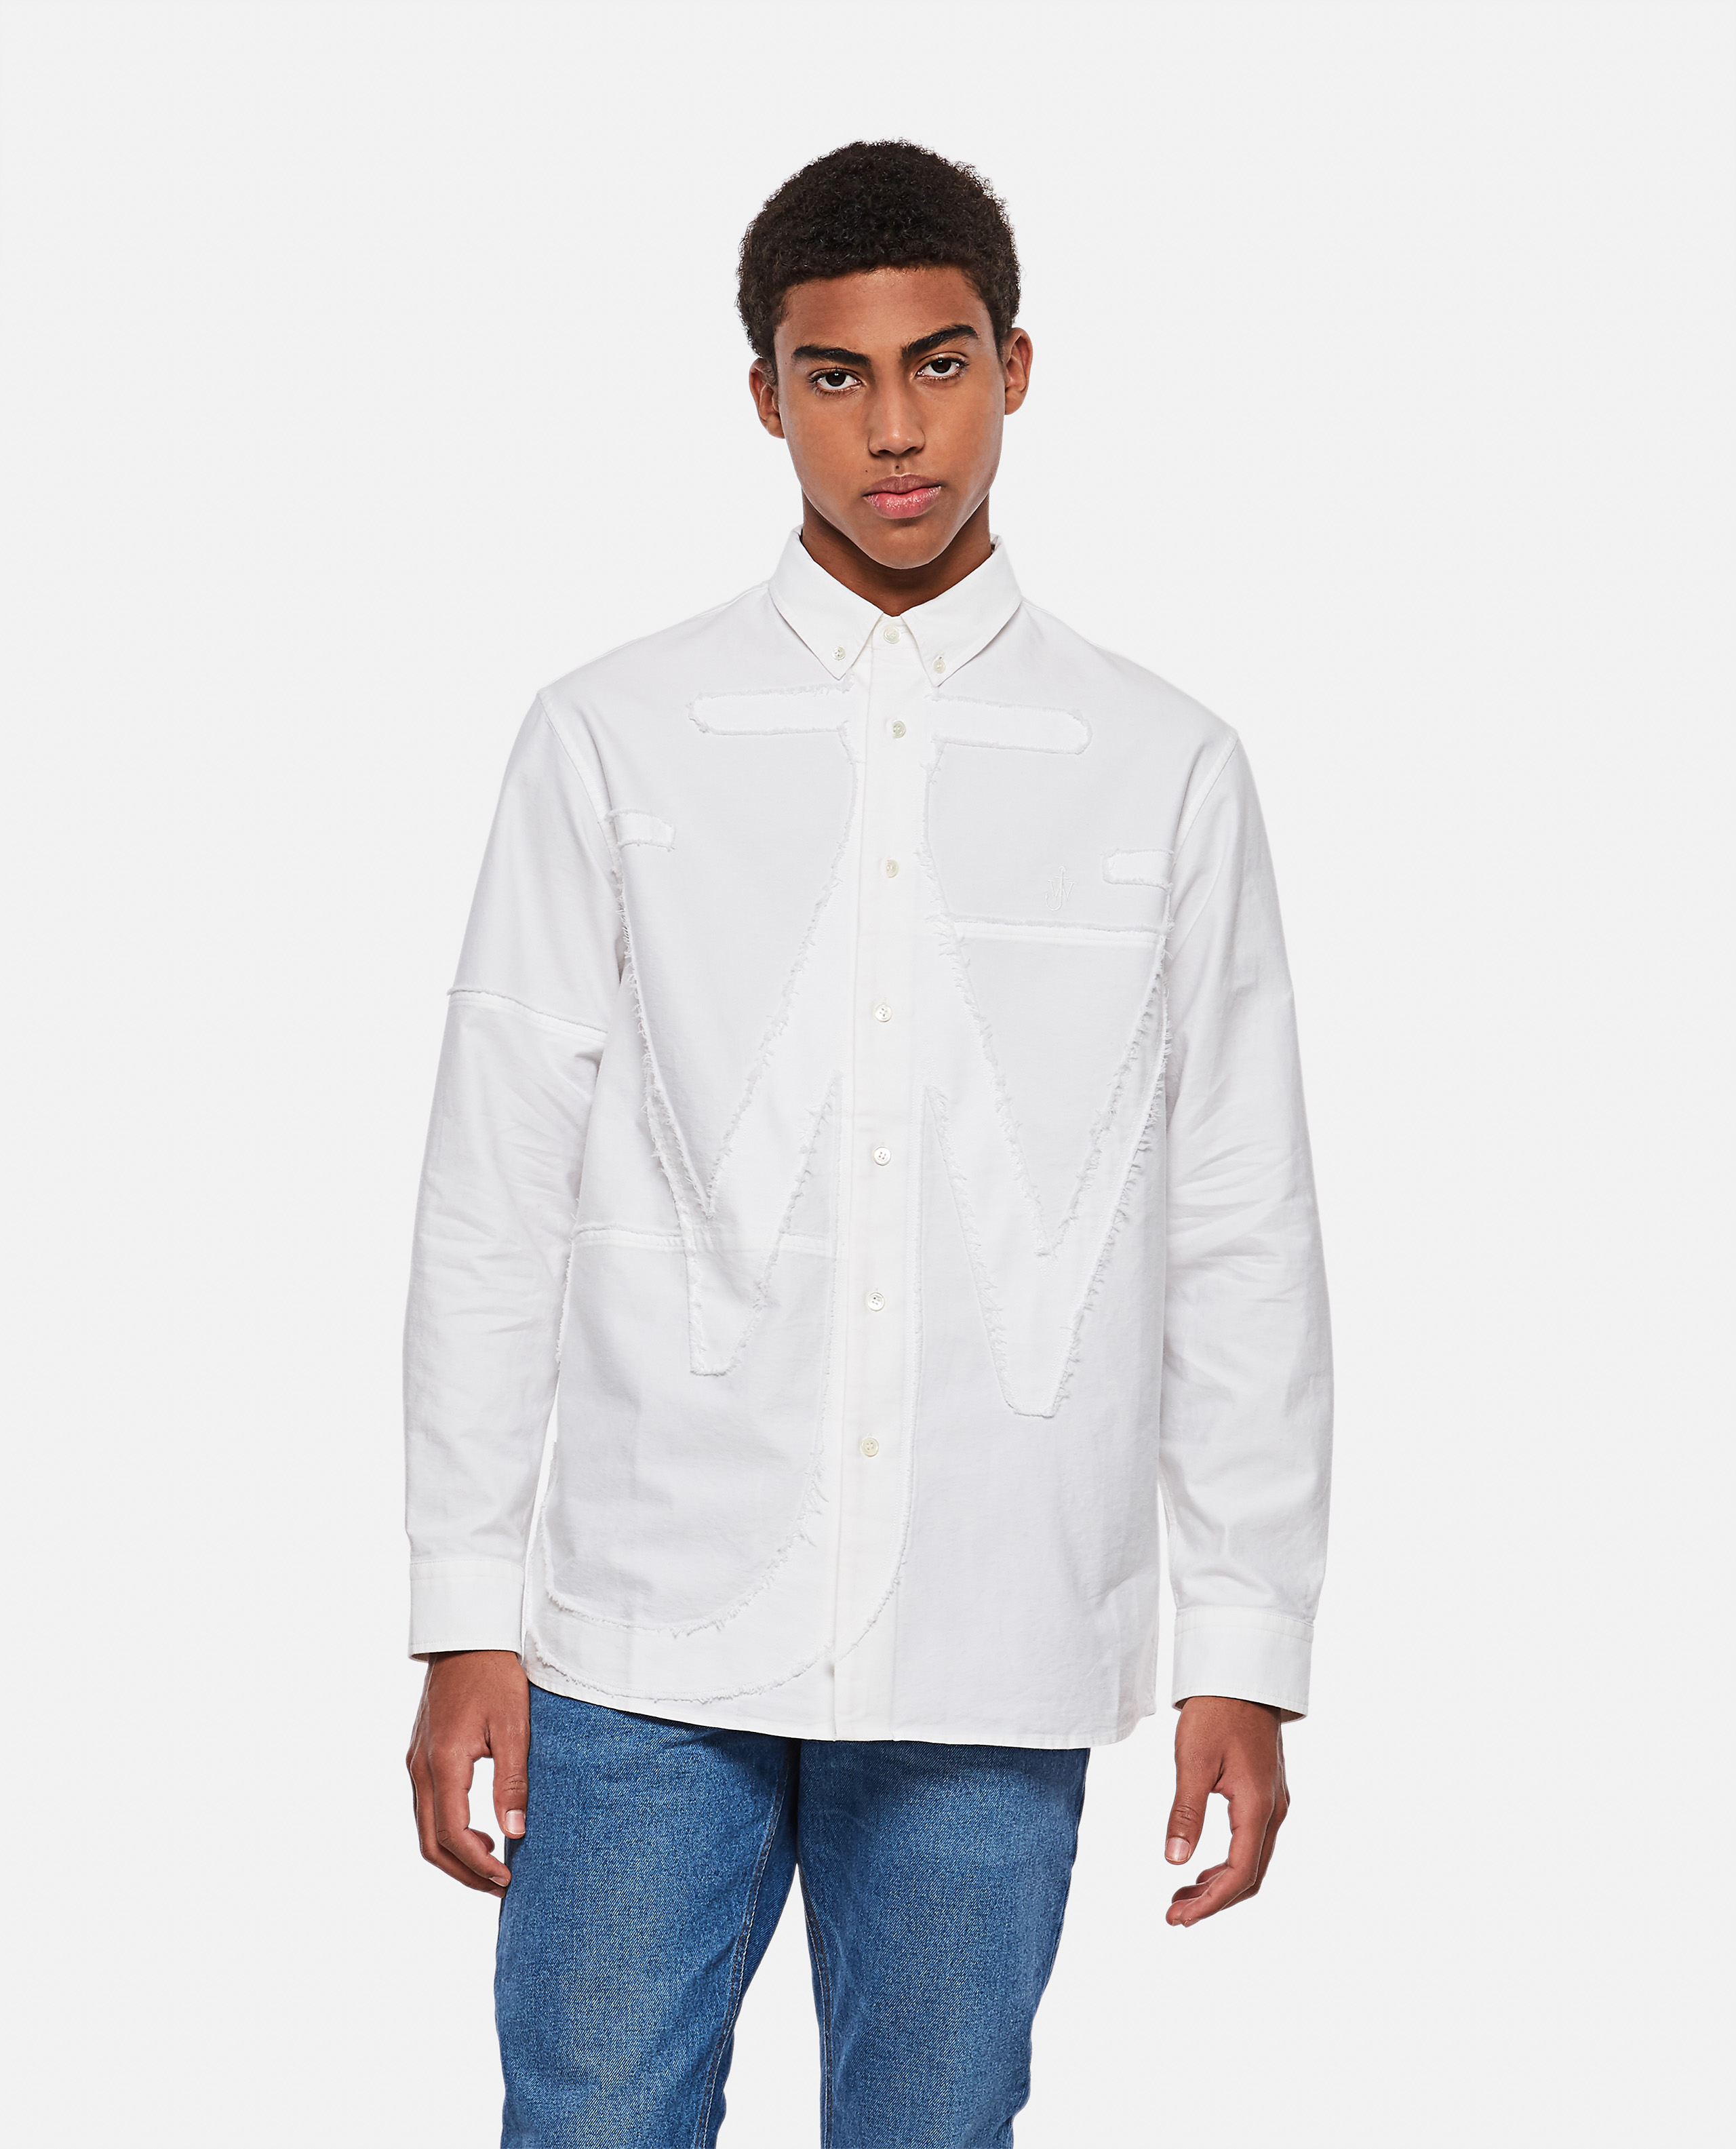 Jw Anderson Downs J.W. ANDERSON COTTON SHIRT